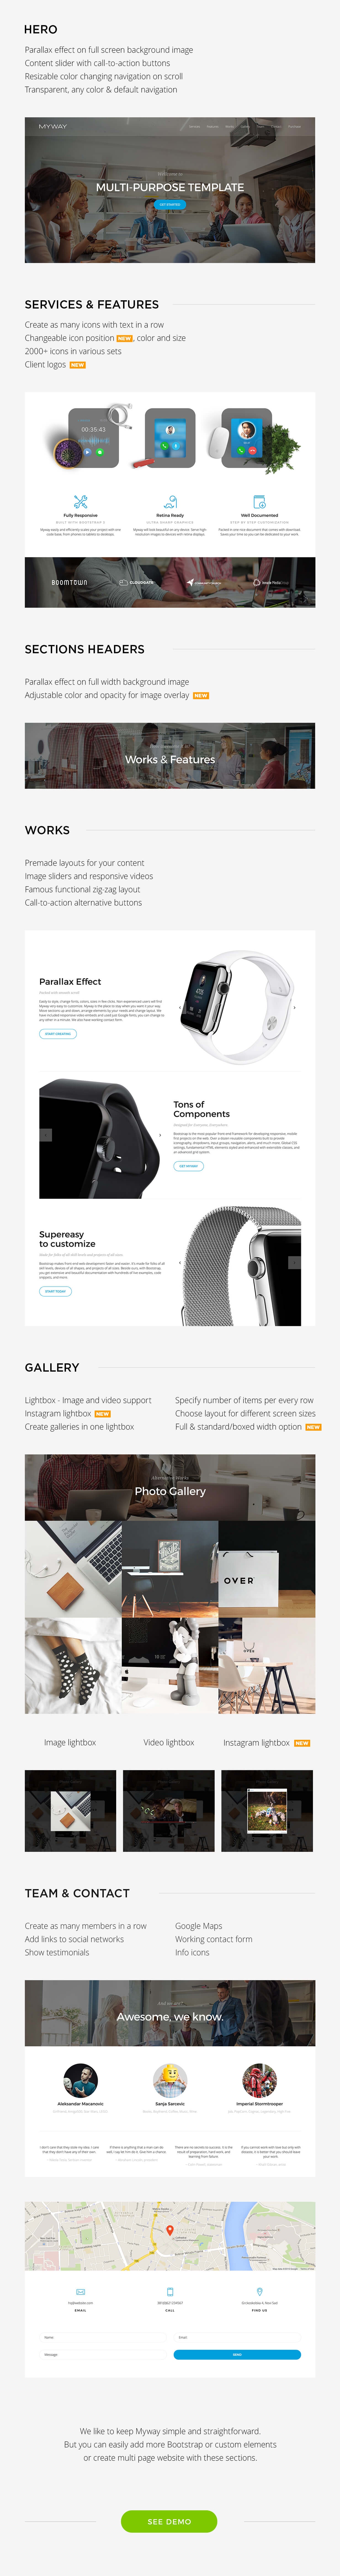 Themeforest | Myway - Onepage Bootstrap Parallax Retina Template Free Download free download Themeforest | Myway - Onepage Bootstrap Parallax Retina Template Free Download nulled Themeforest | Myway - Onepage Bootstrap Parallax Retina Template Free Download